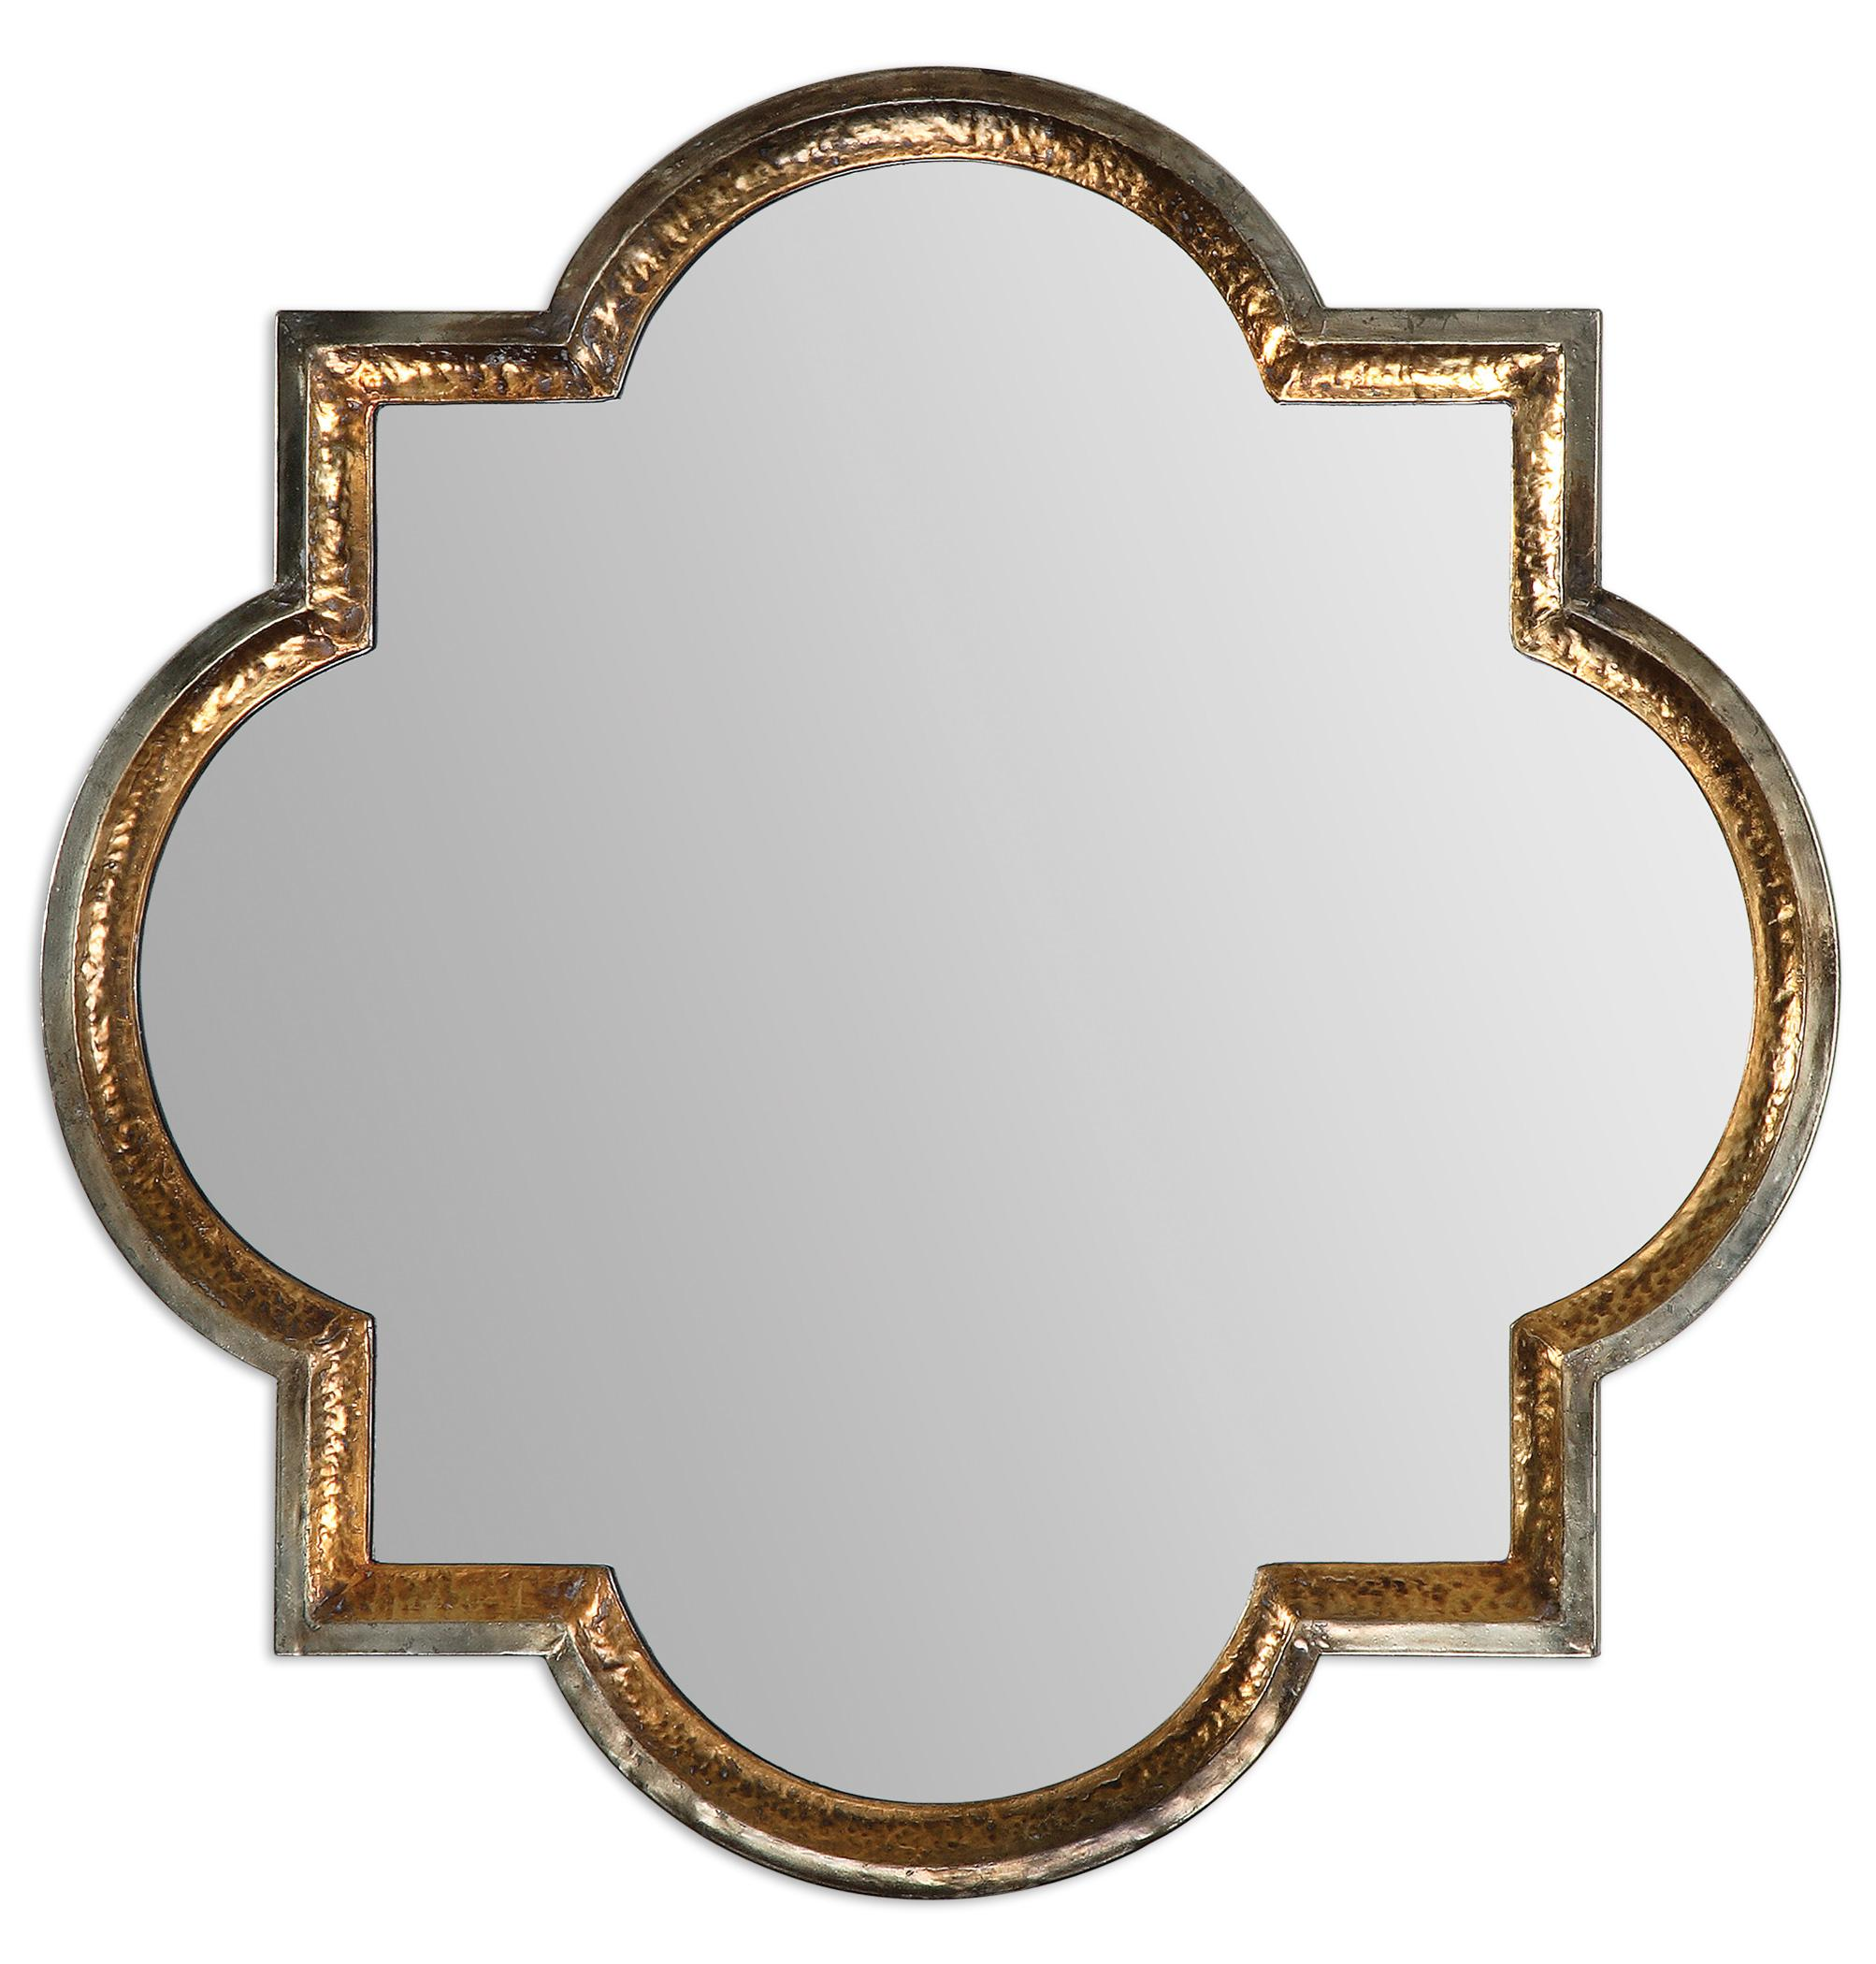 Uttermost Mirrors Lourosa Gold Mirror - Item Number: 12862